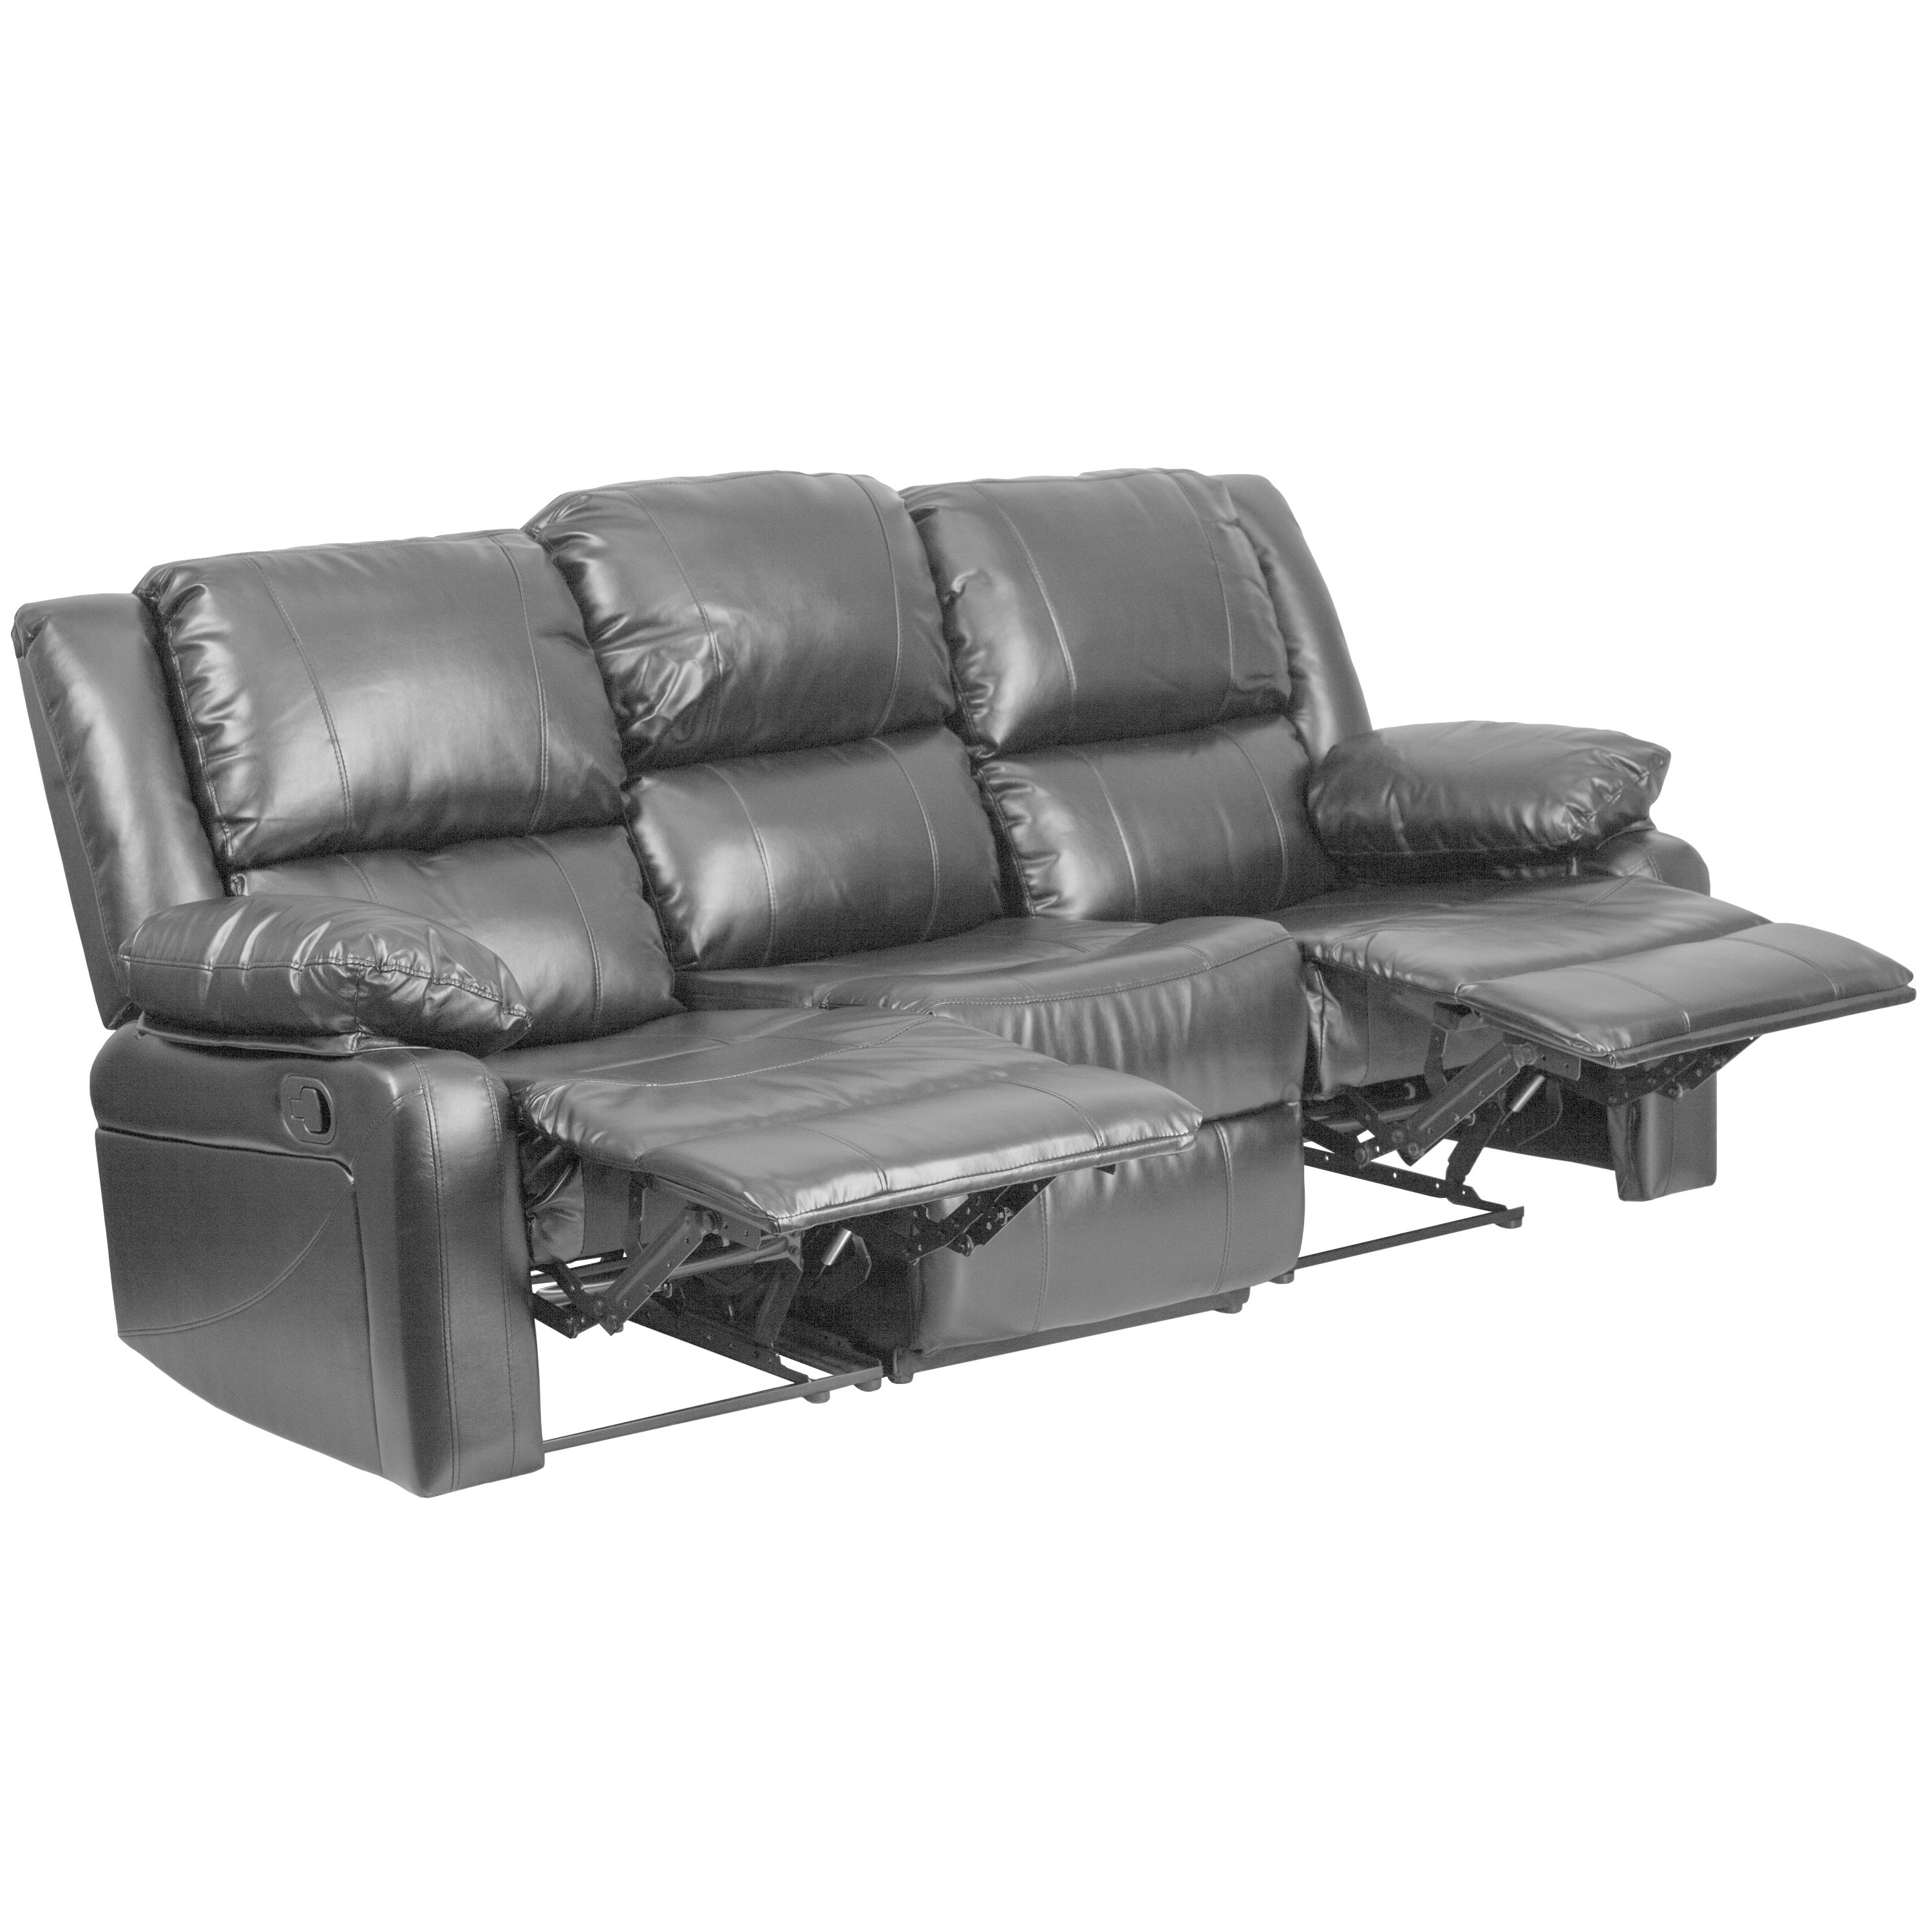 Porch Den Stonehurst Gravenstein Leather Sofa With Two Built In Recliners Free Shipping Today 20674962